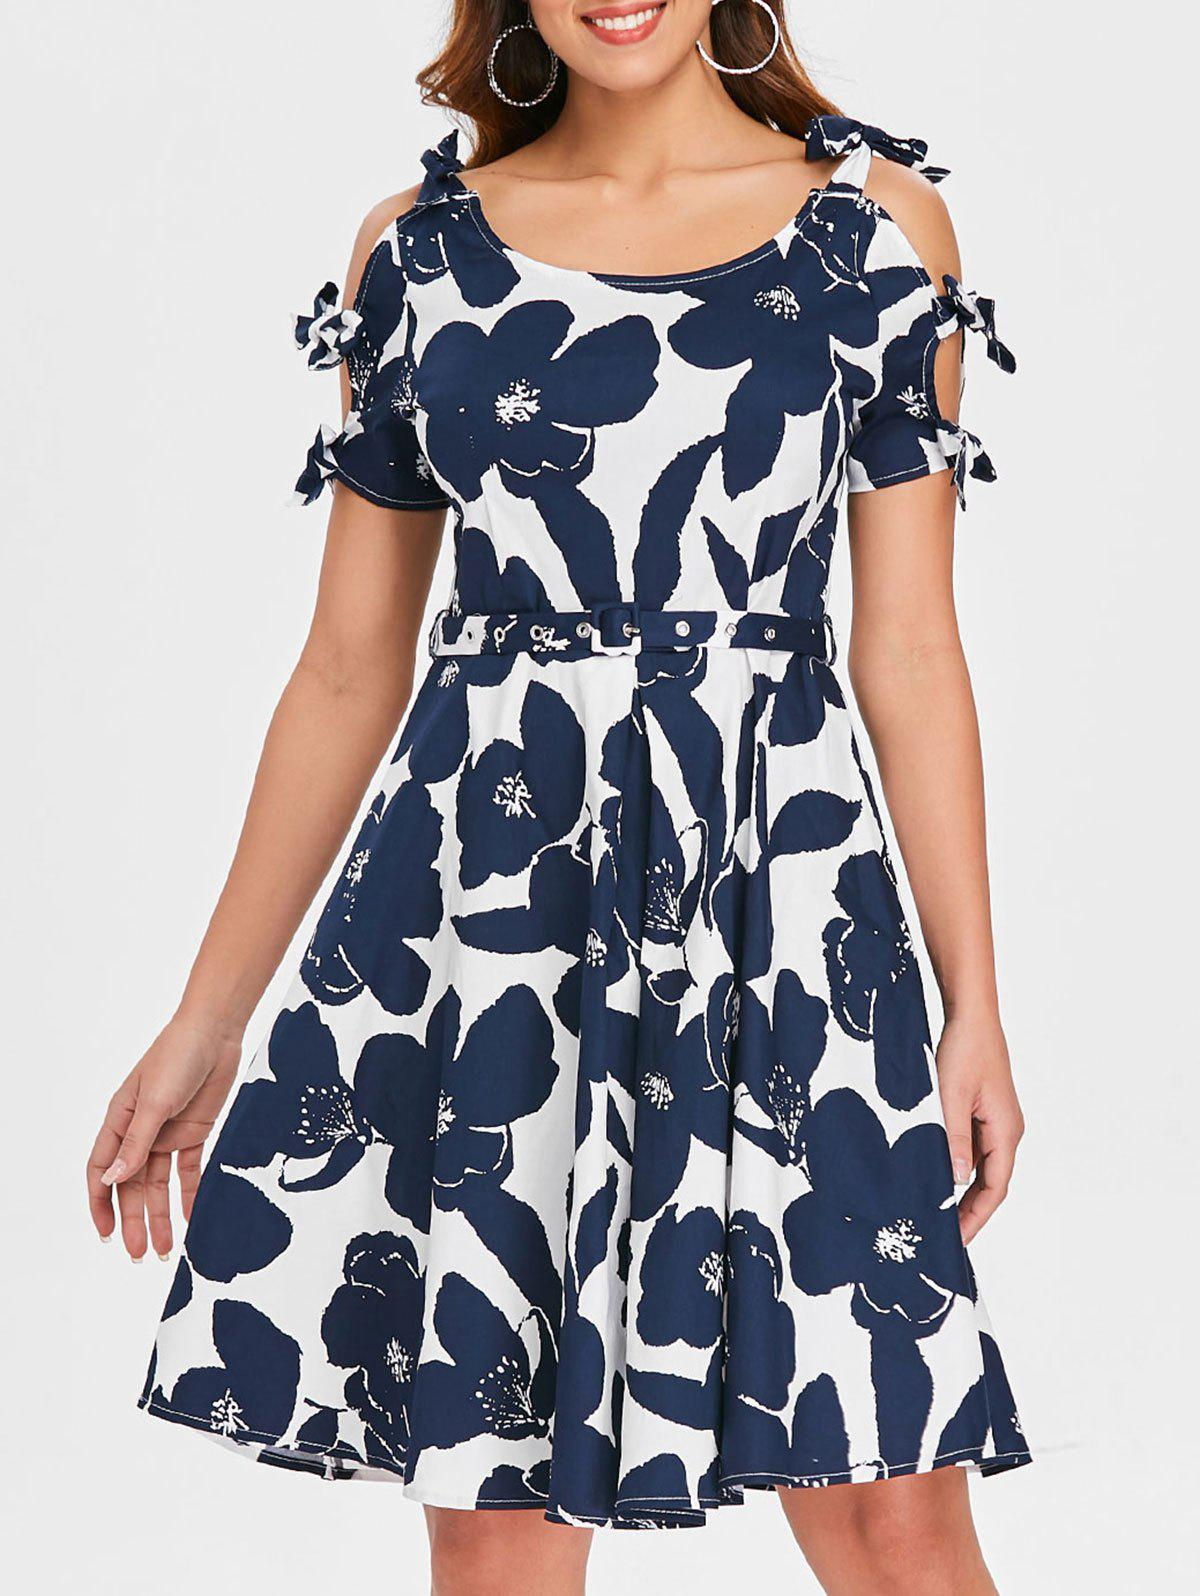 Fashion Retro Floral Bowknot Cut Out Flare Dress